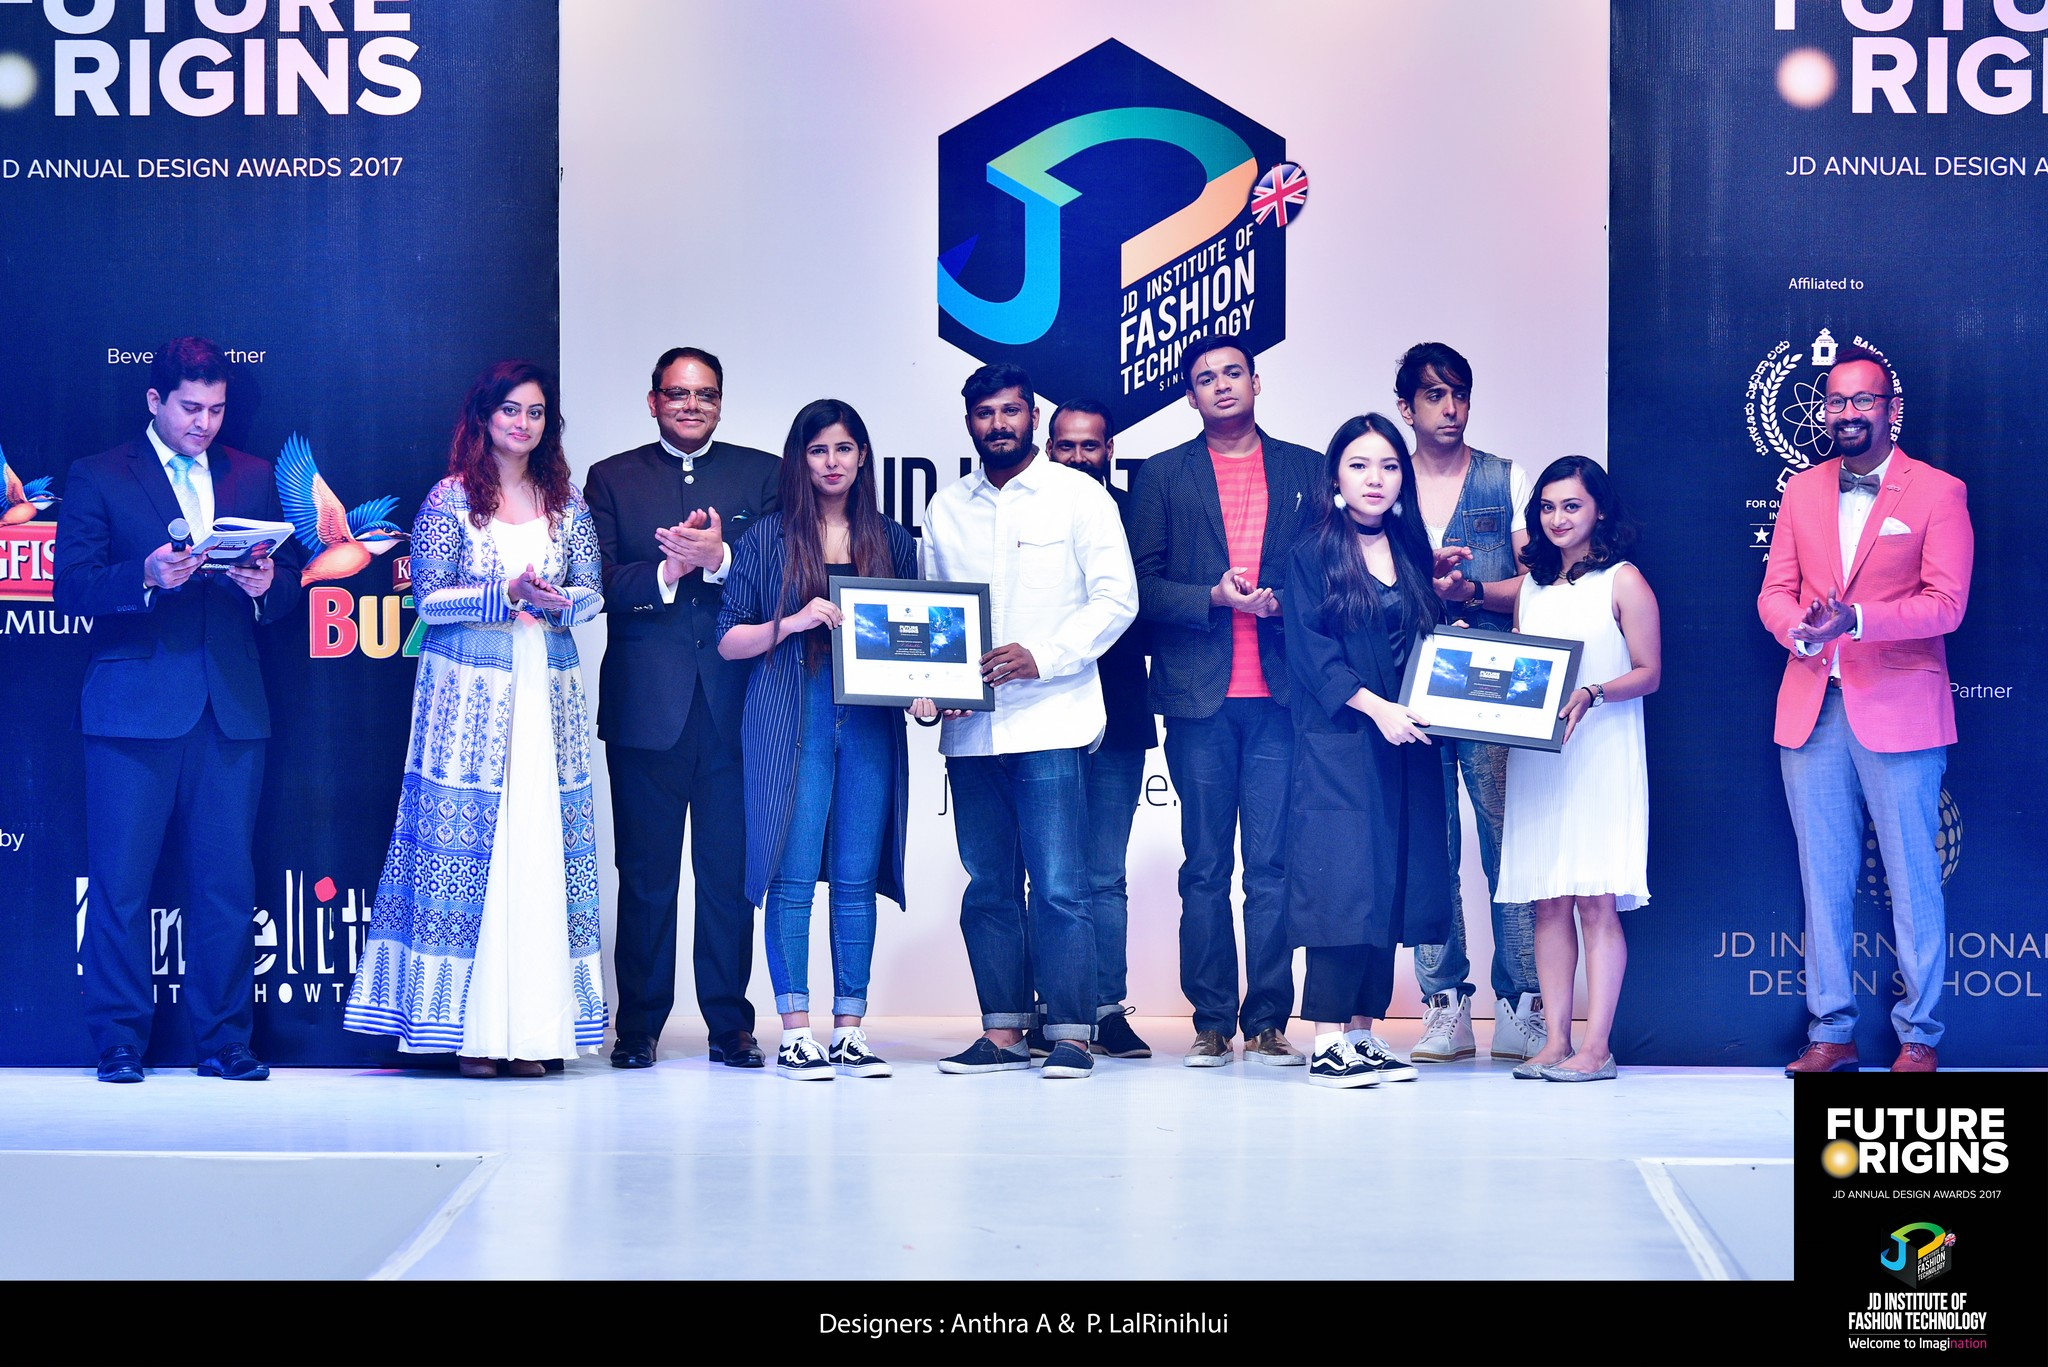 Smart Athluxury - Future Origin - JD Annual Design Awards 2017 | Photography : Jerin Nath smart athluxury - Smart Athluxury Future Origin JD Annual Design Awards 2017 8 - Smart Athluxury – Future Origin – JD Annual Design Awards 2017